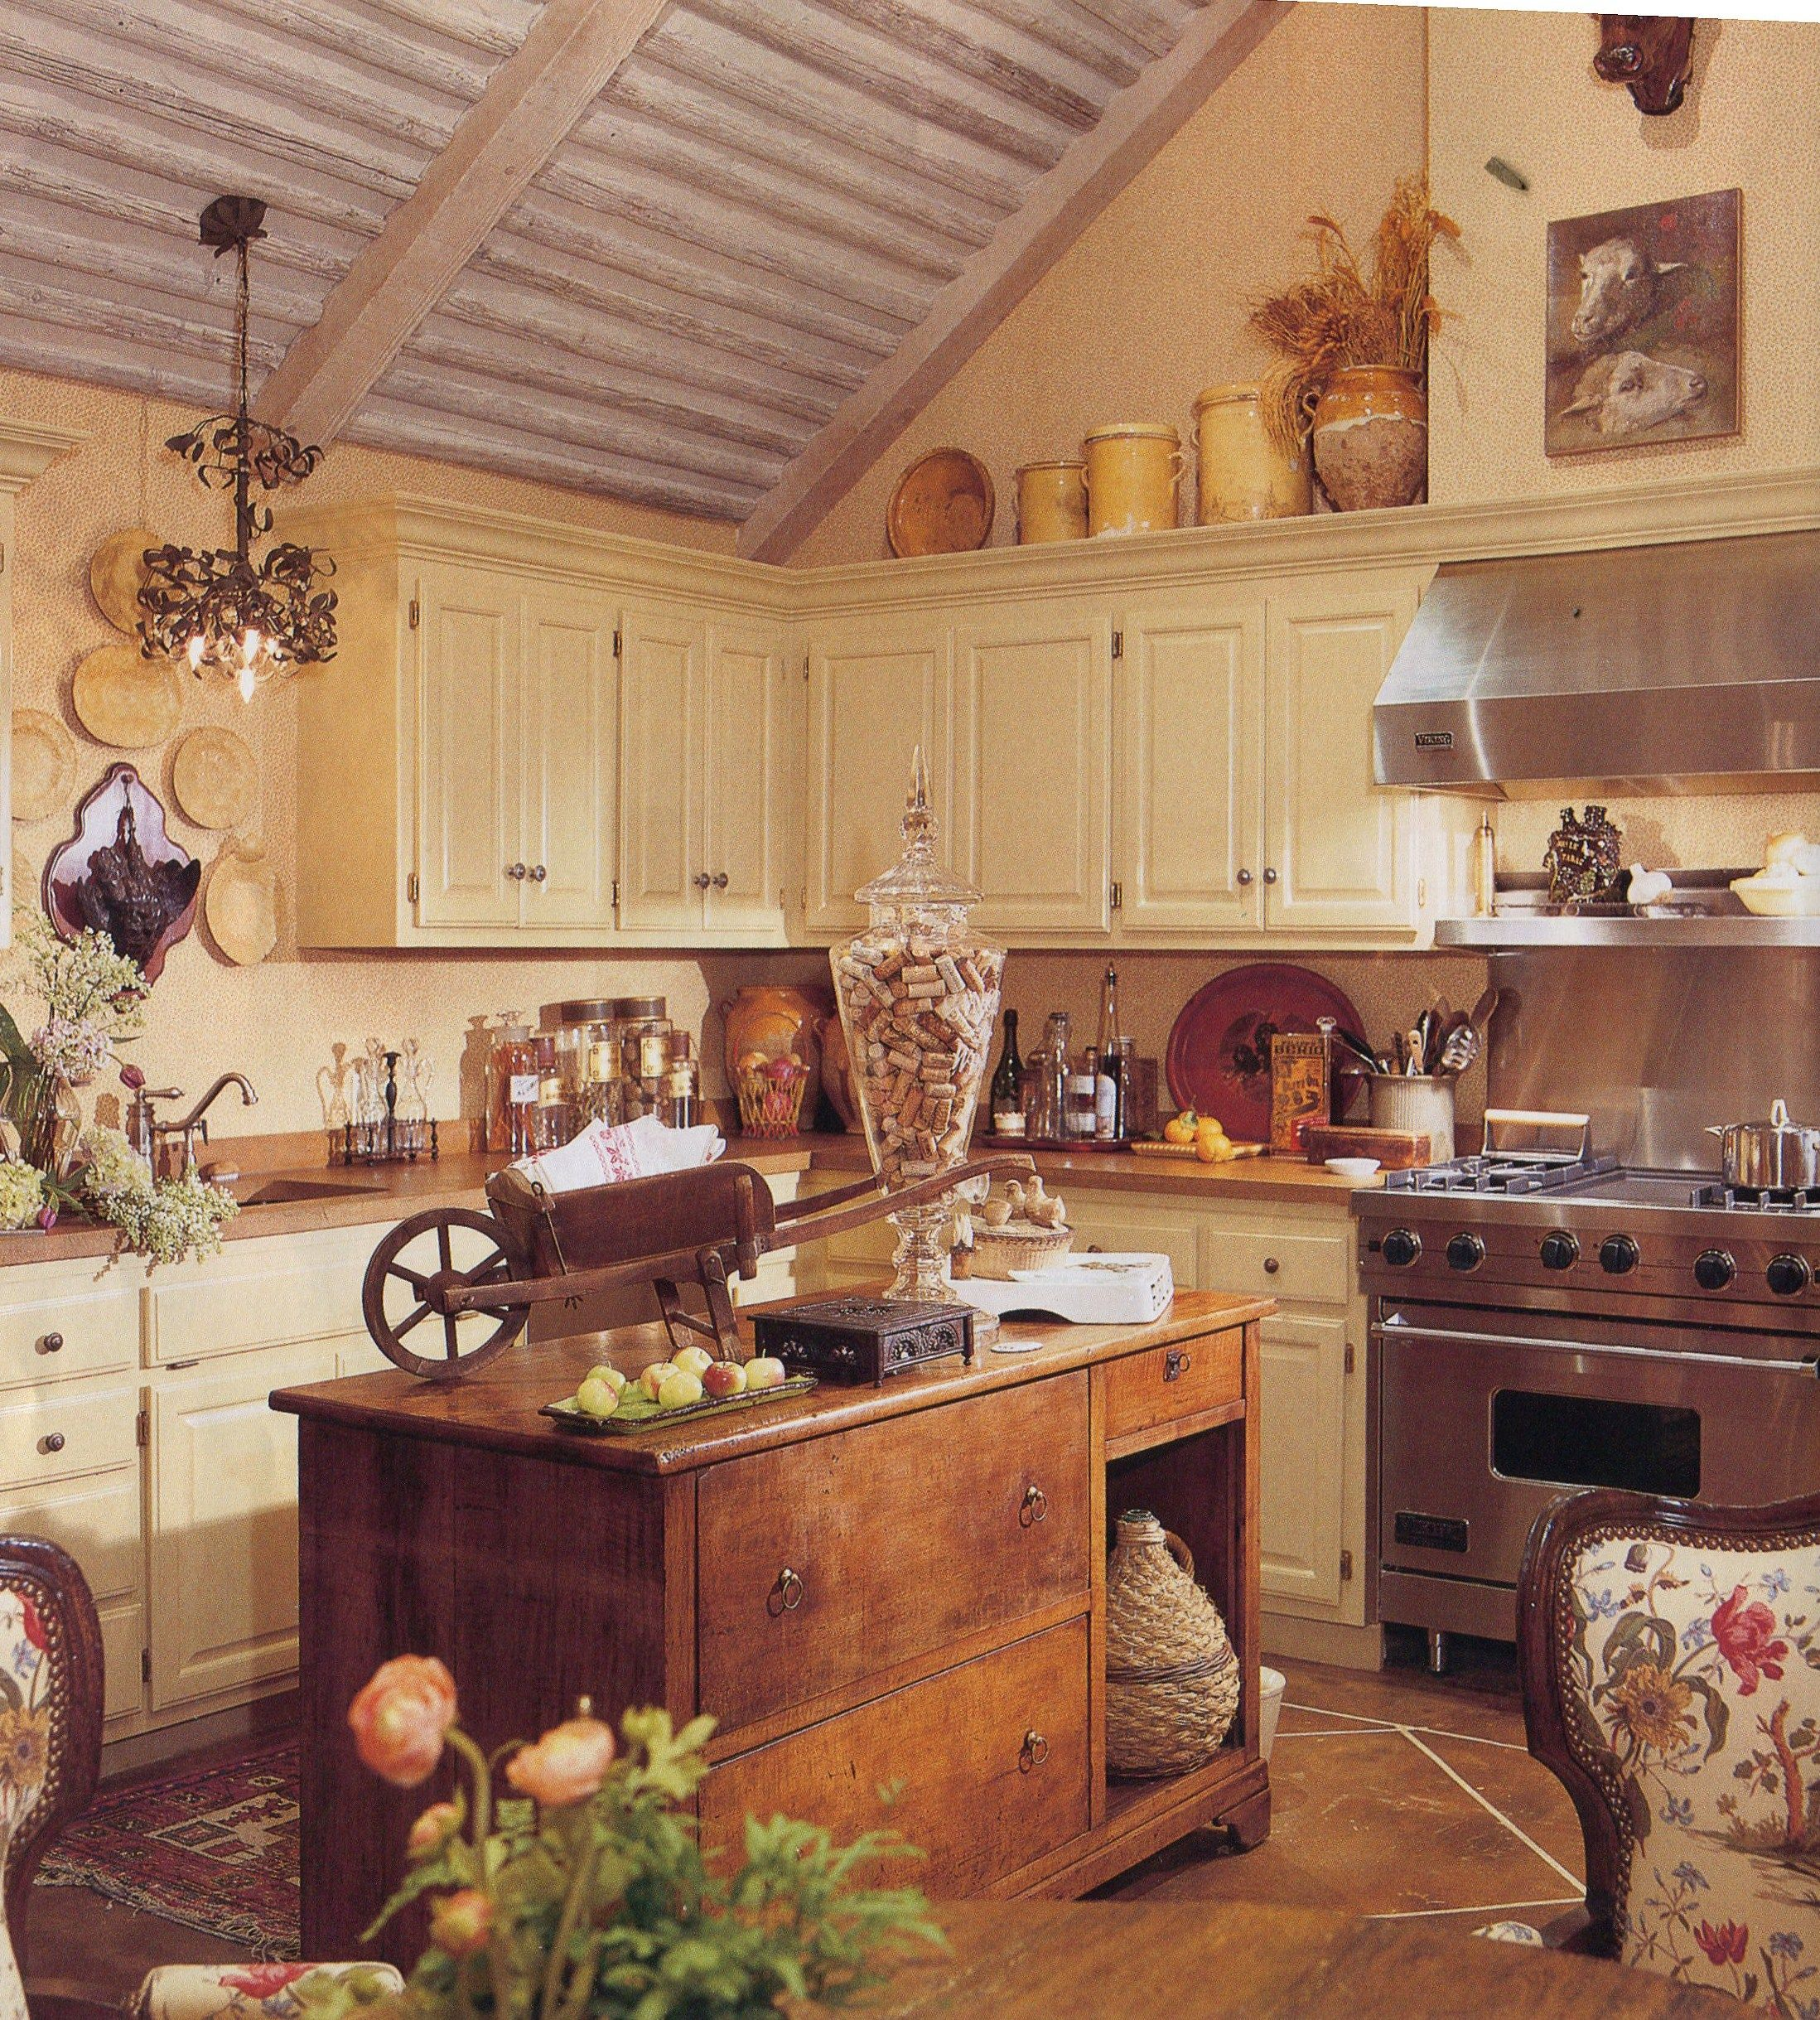 Open Concept French Country Kitchen Home Design Ideas: Kitchen - Rustic Elements, Vaulted Ceiling